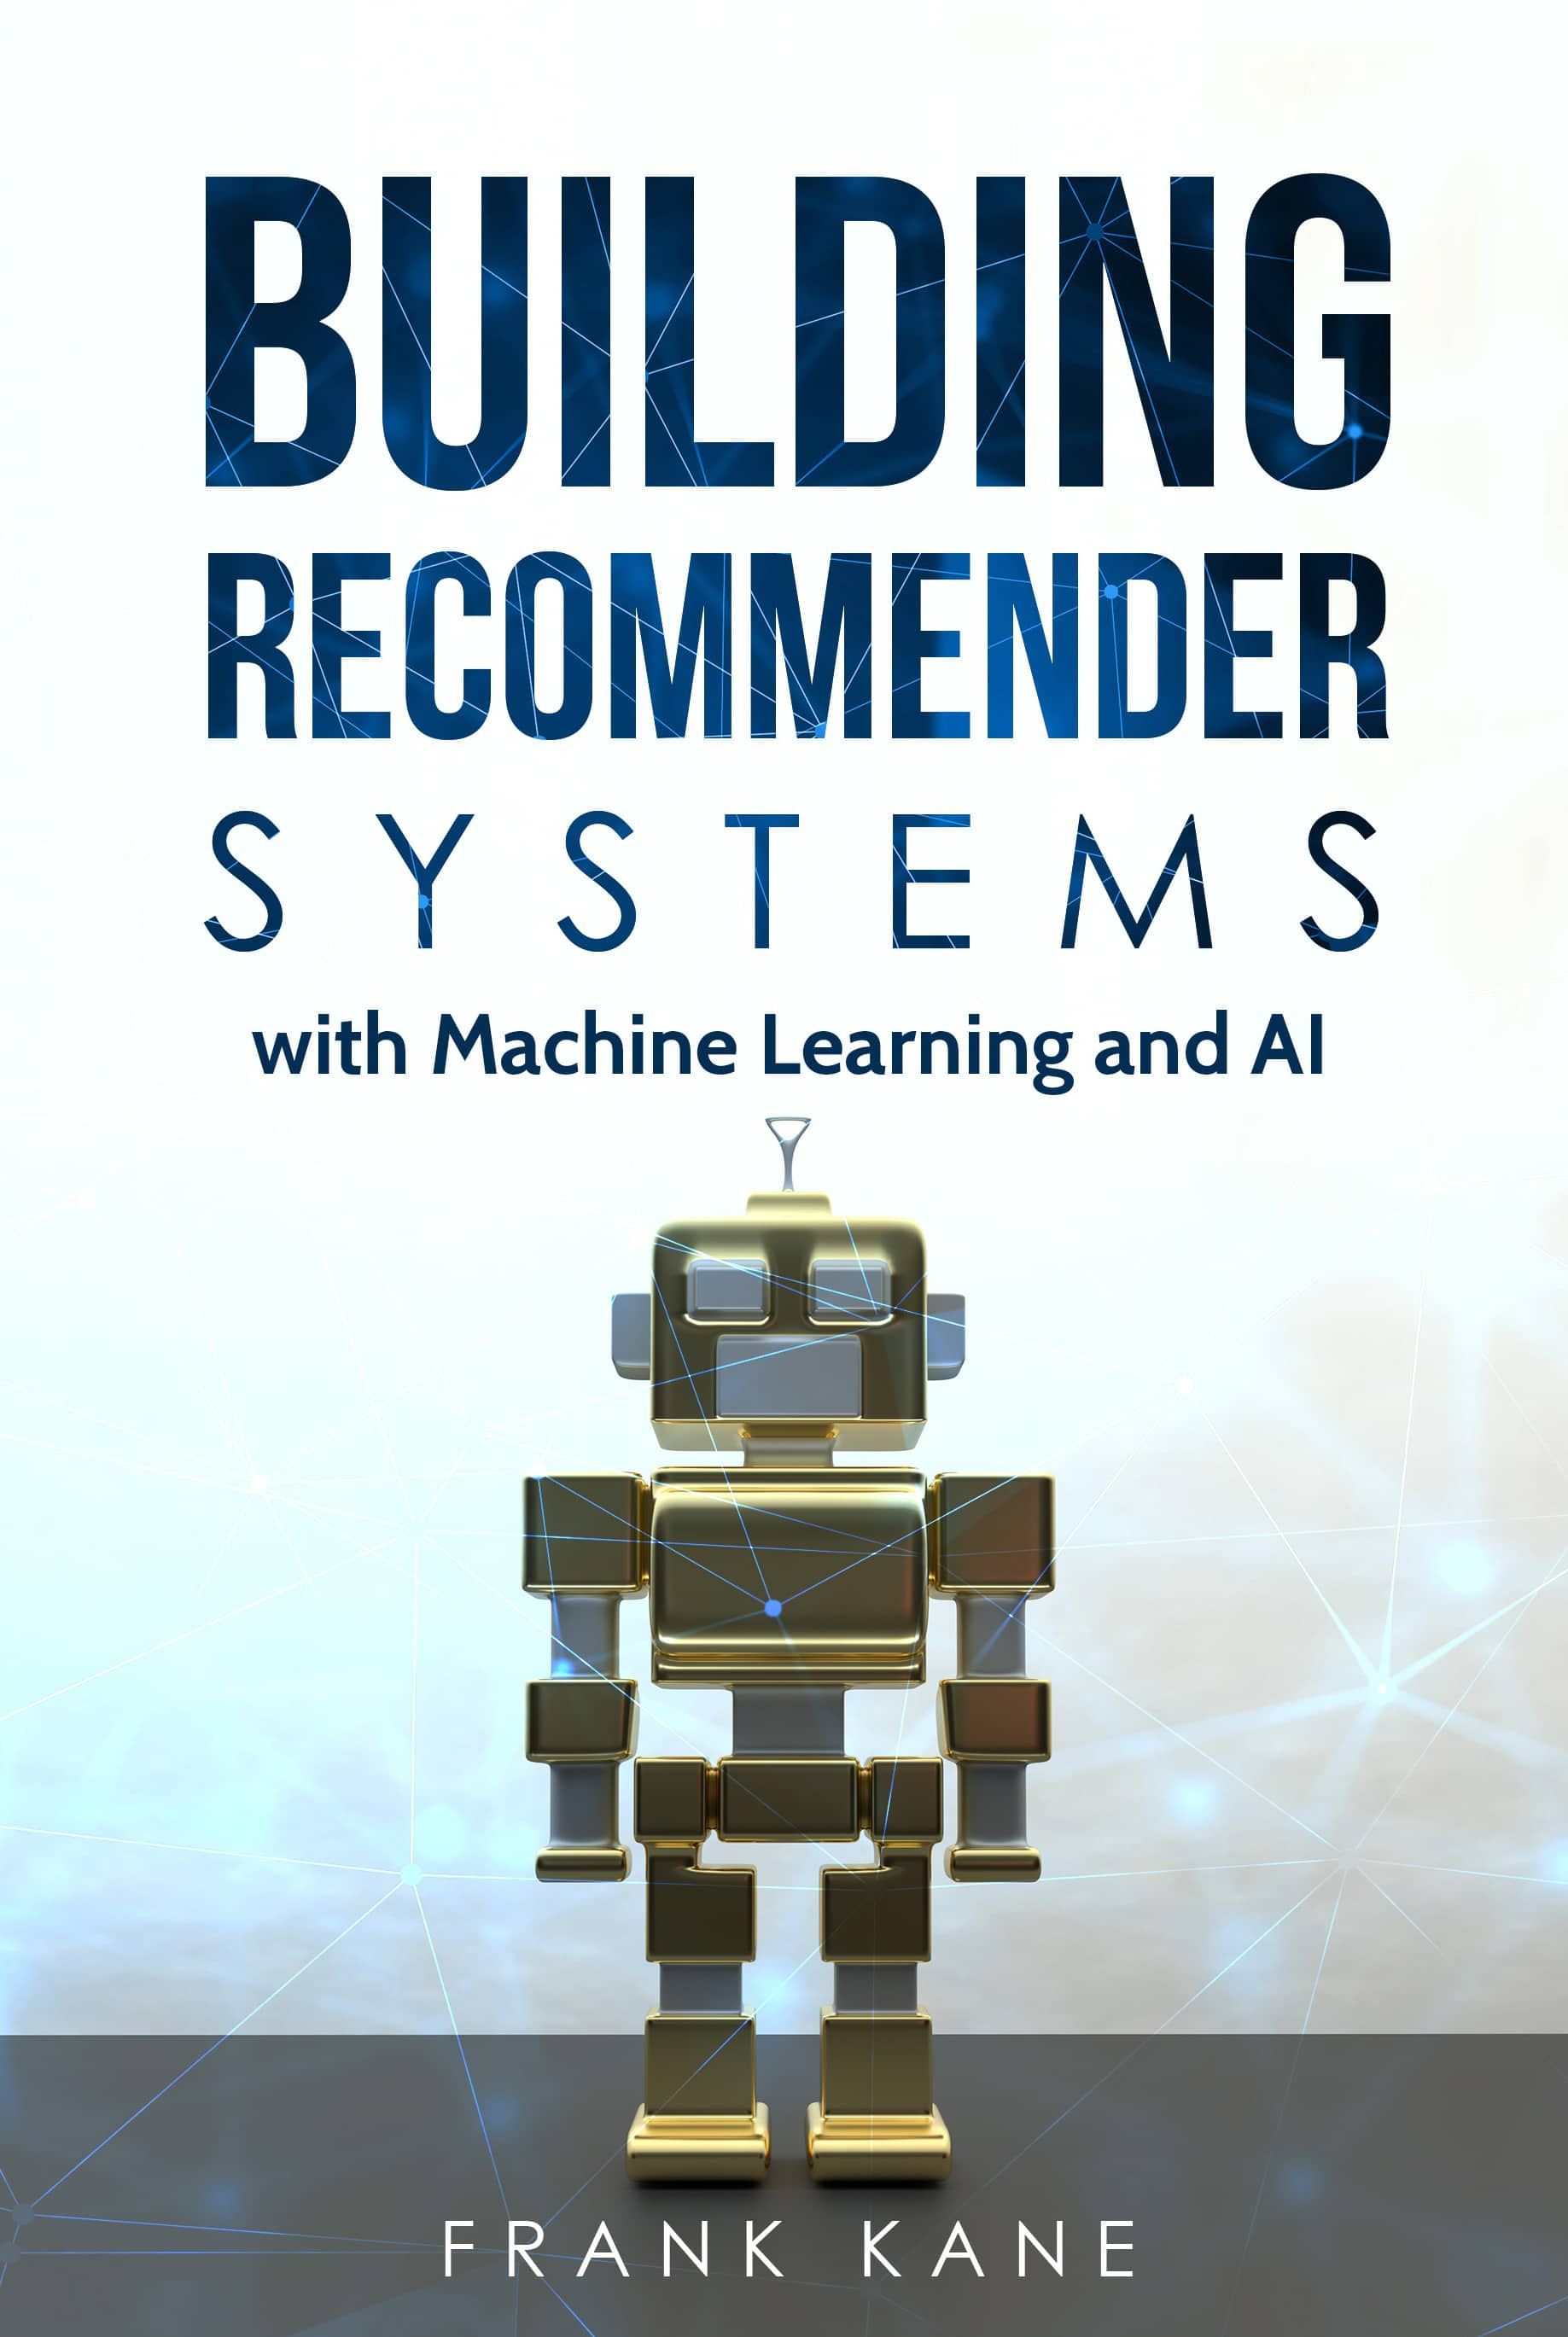 Building Recommender Systems book cover